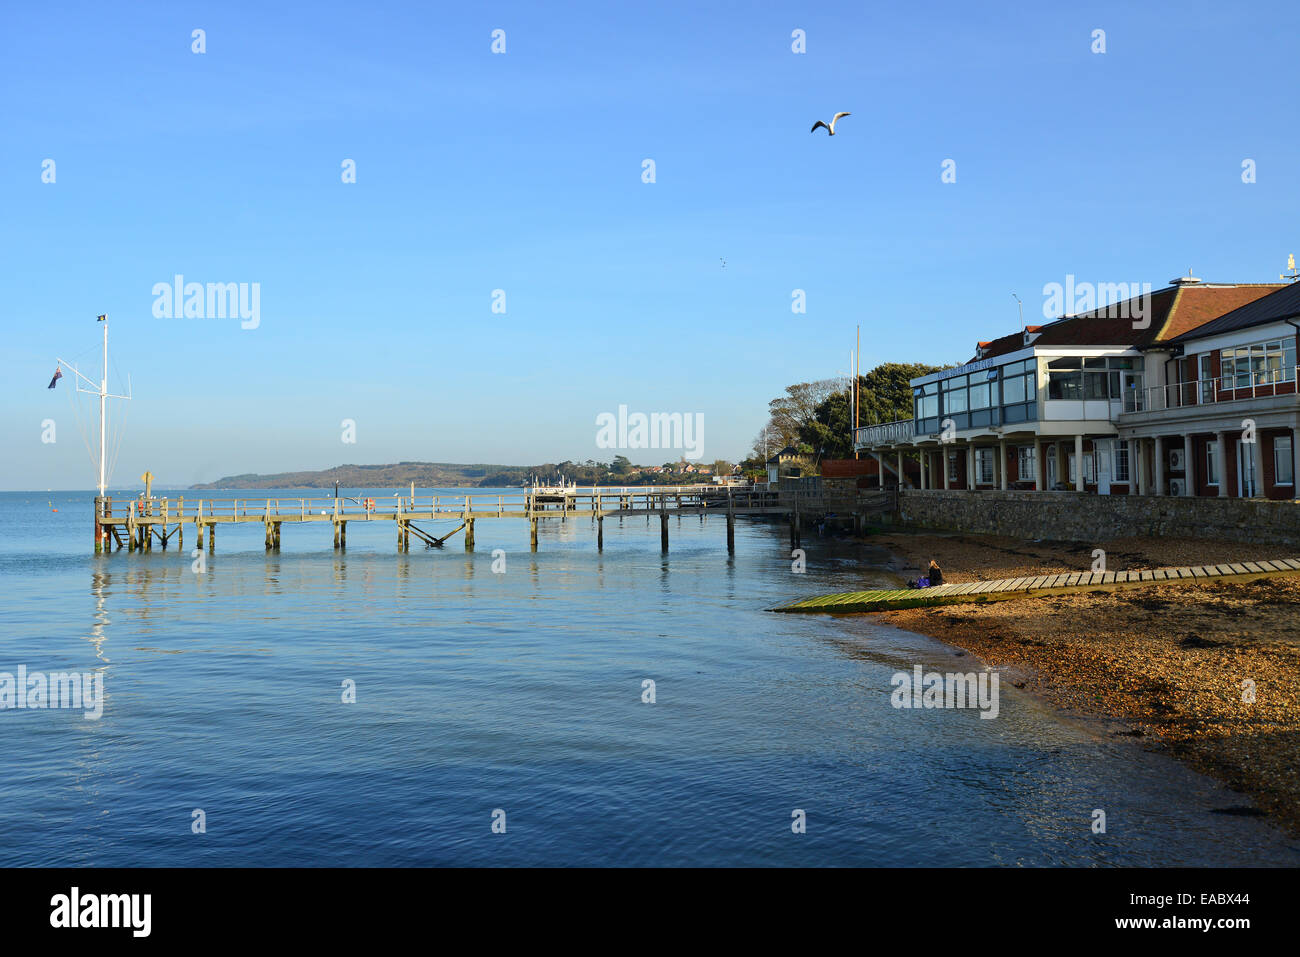 View of foreshore from Yarmouth Pier, Yarmouth, Isle of Wight, England, United Kingdom - Stock Image